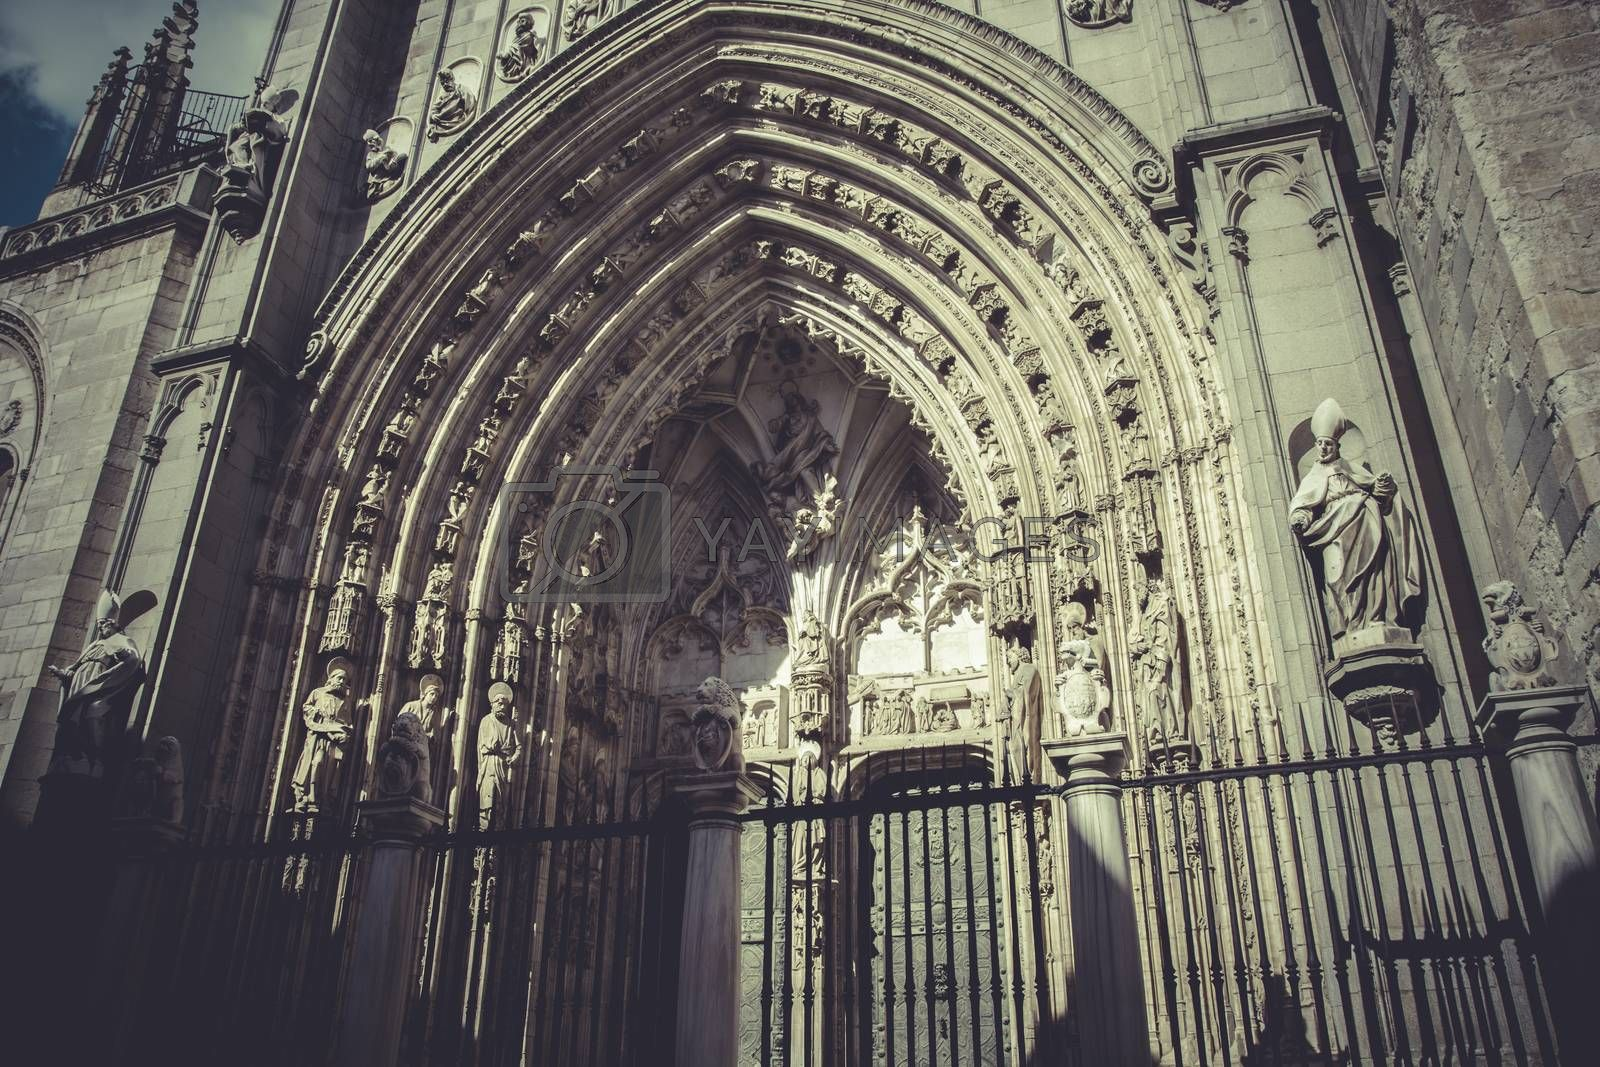 arch and door of the cathedral of Toledo, imperial city. Spain by FernandoCortes